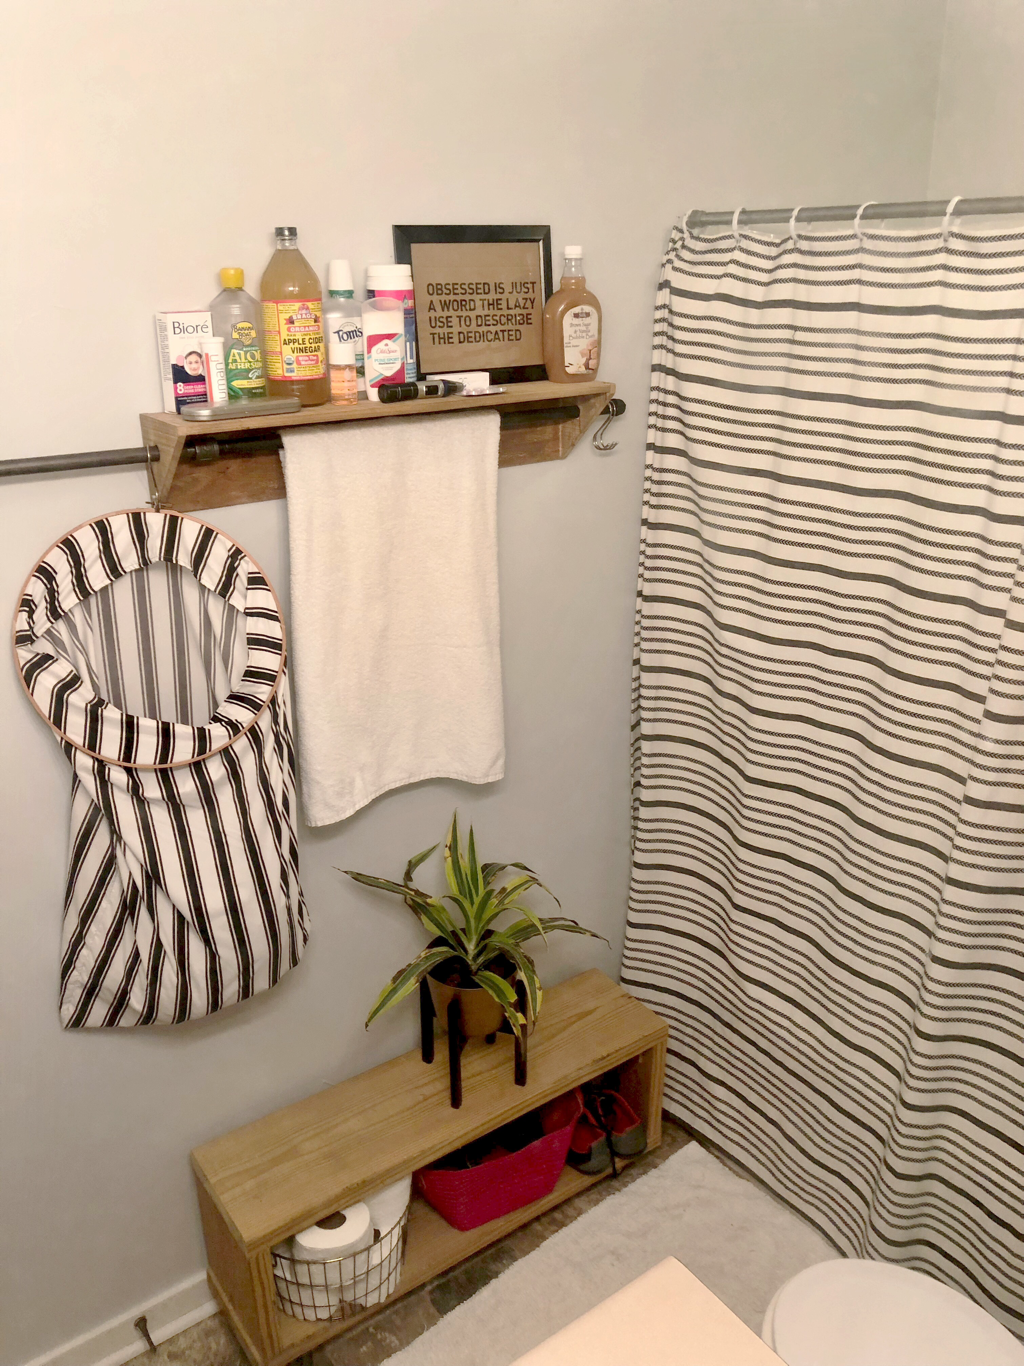 DIY bathroom remodel with DIY towel rack and organization hacks.